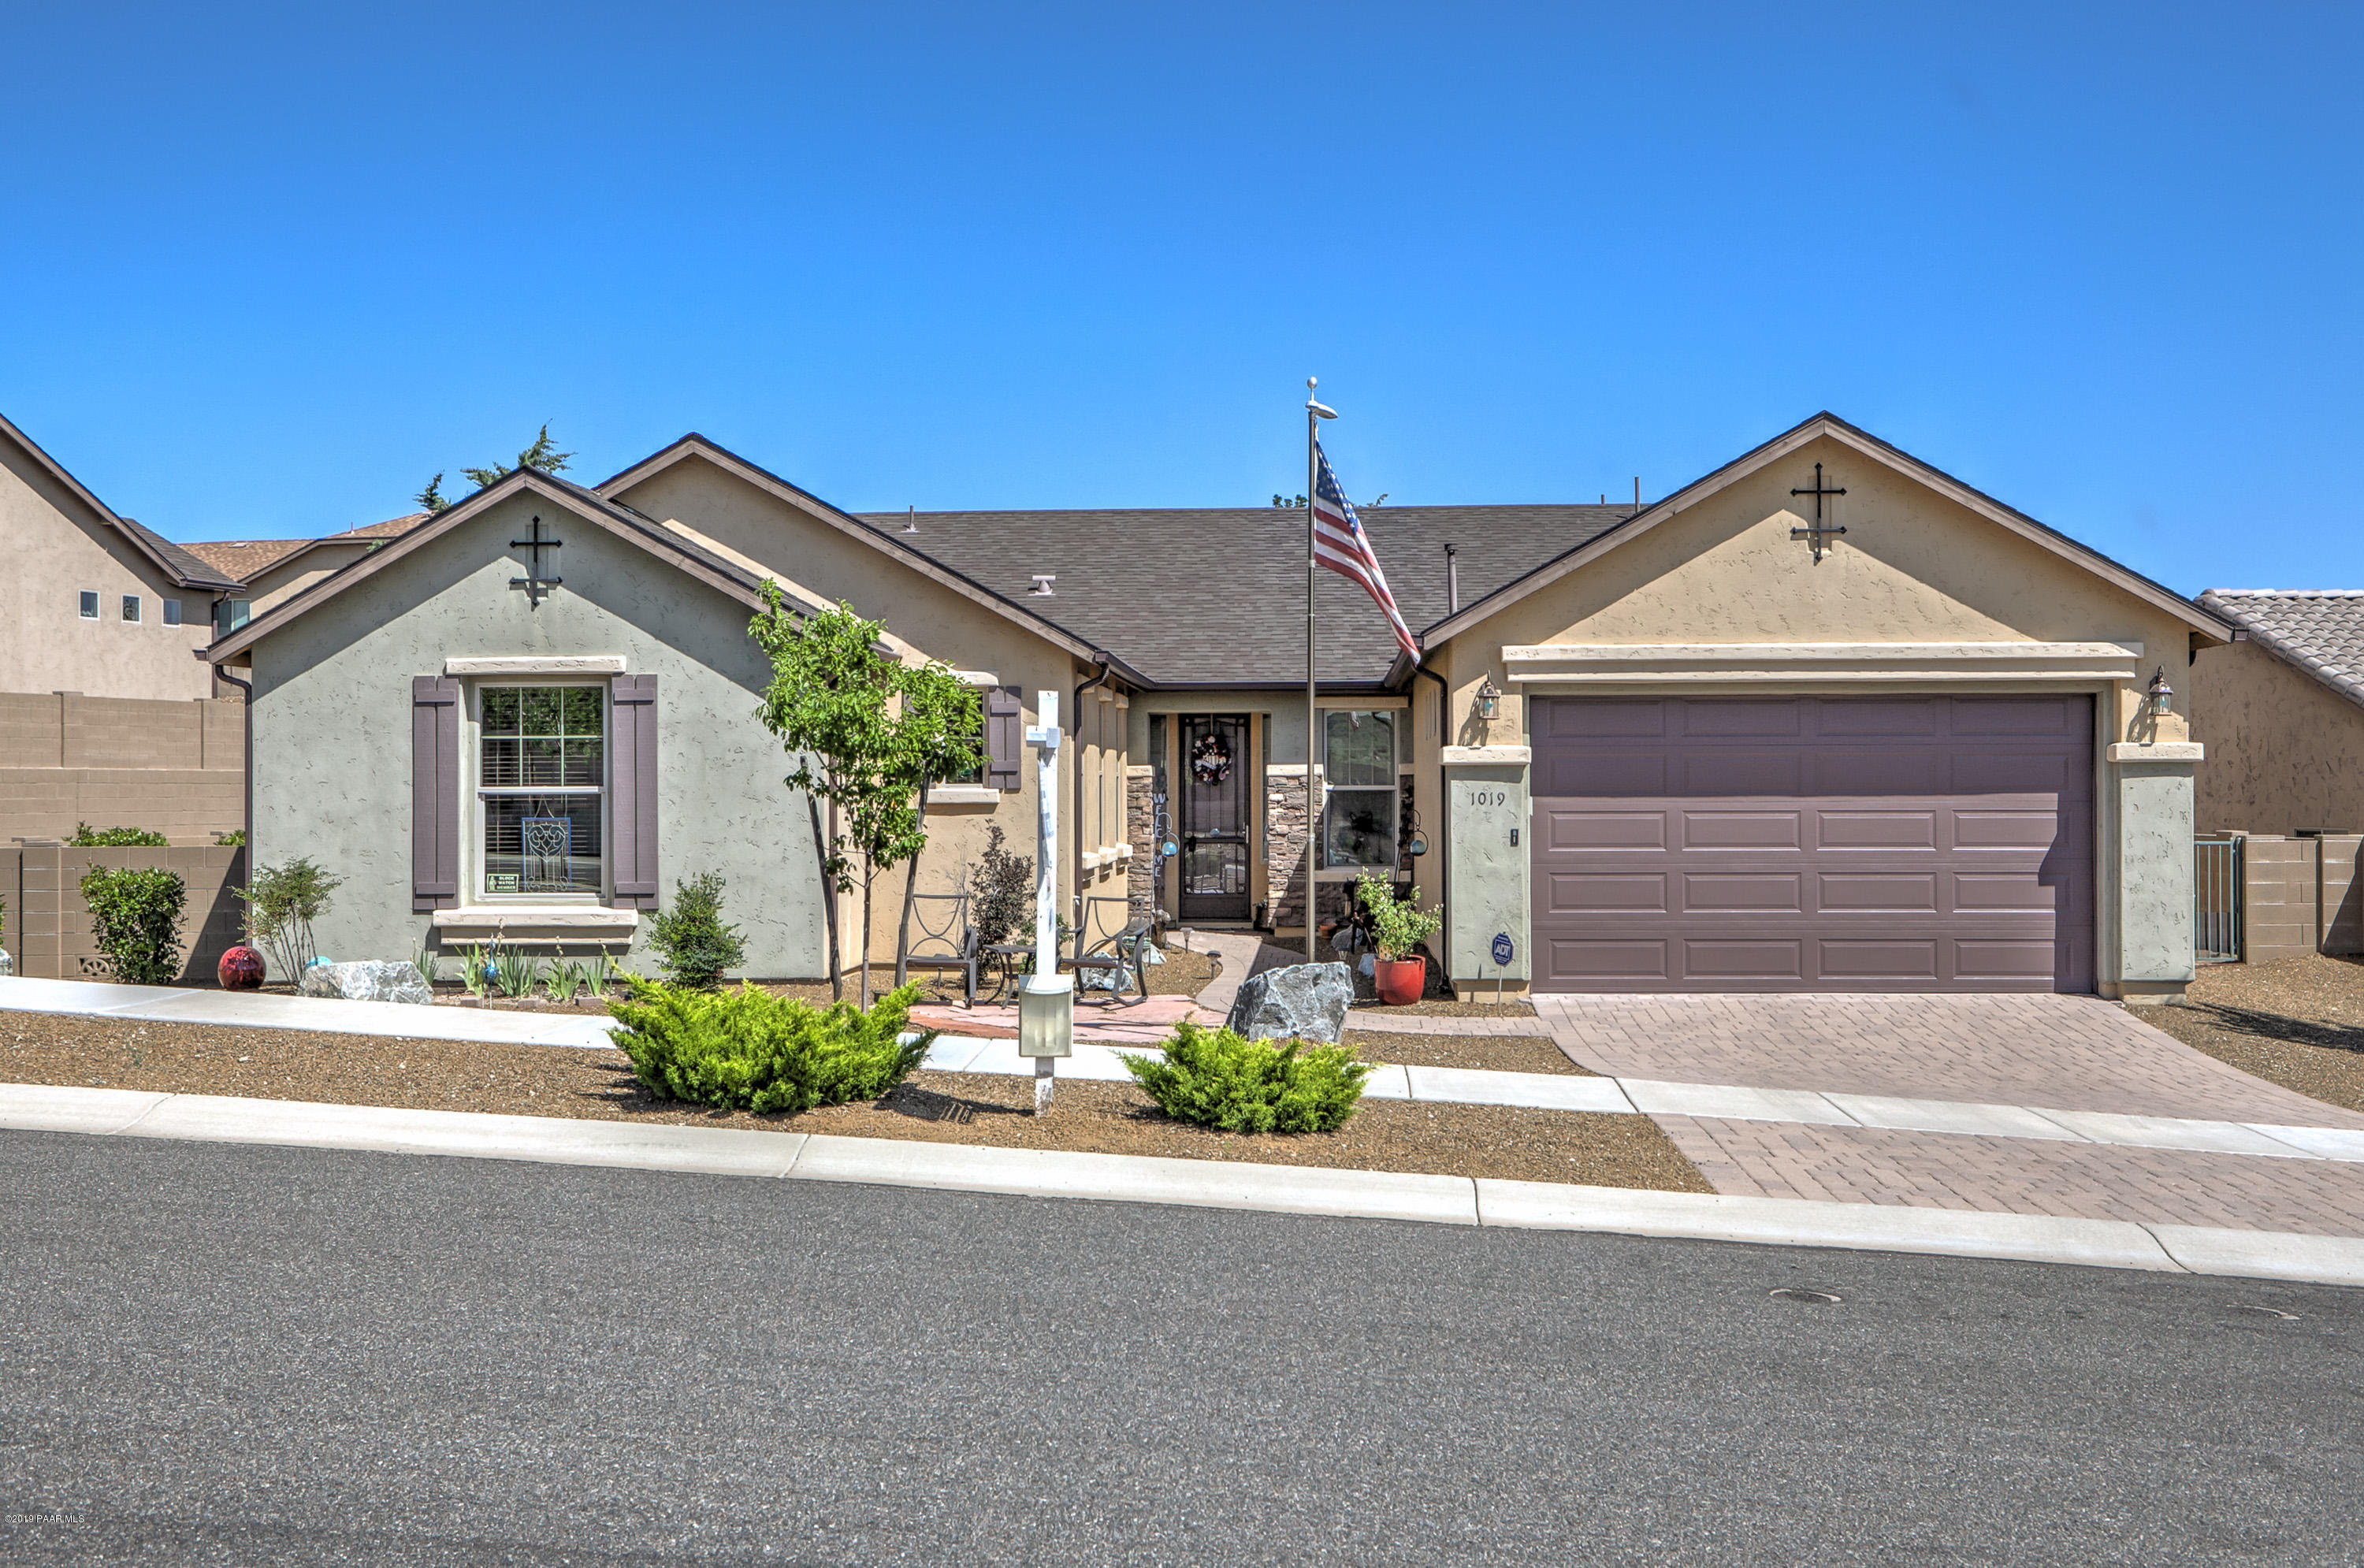 1019 N Wide Open Trail, Prescott Valley, Arizona